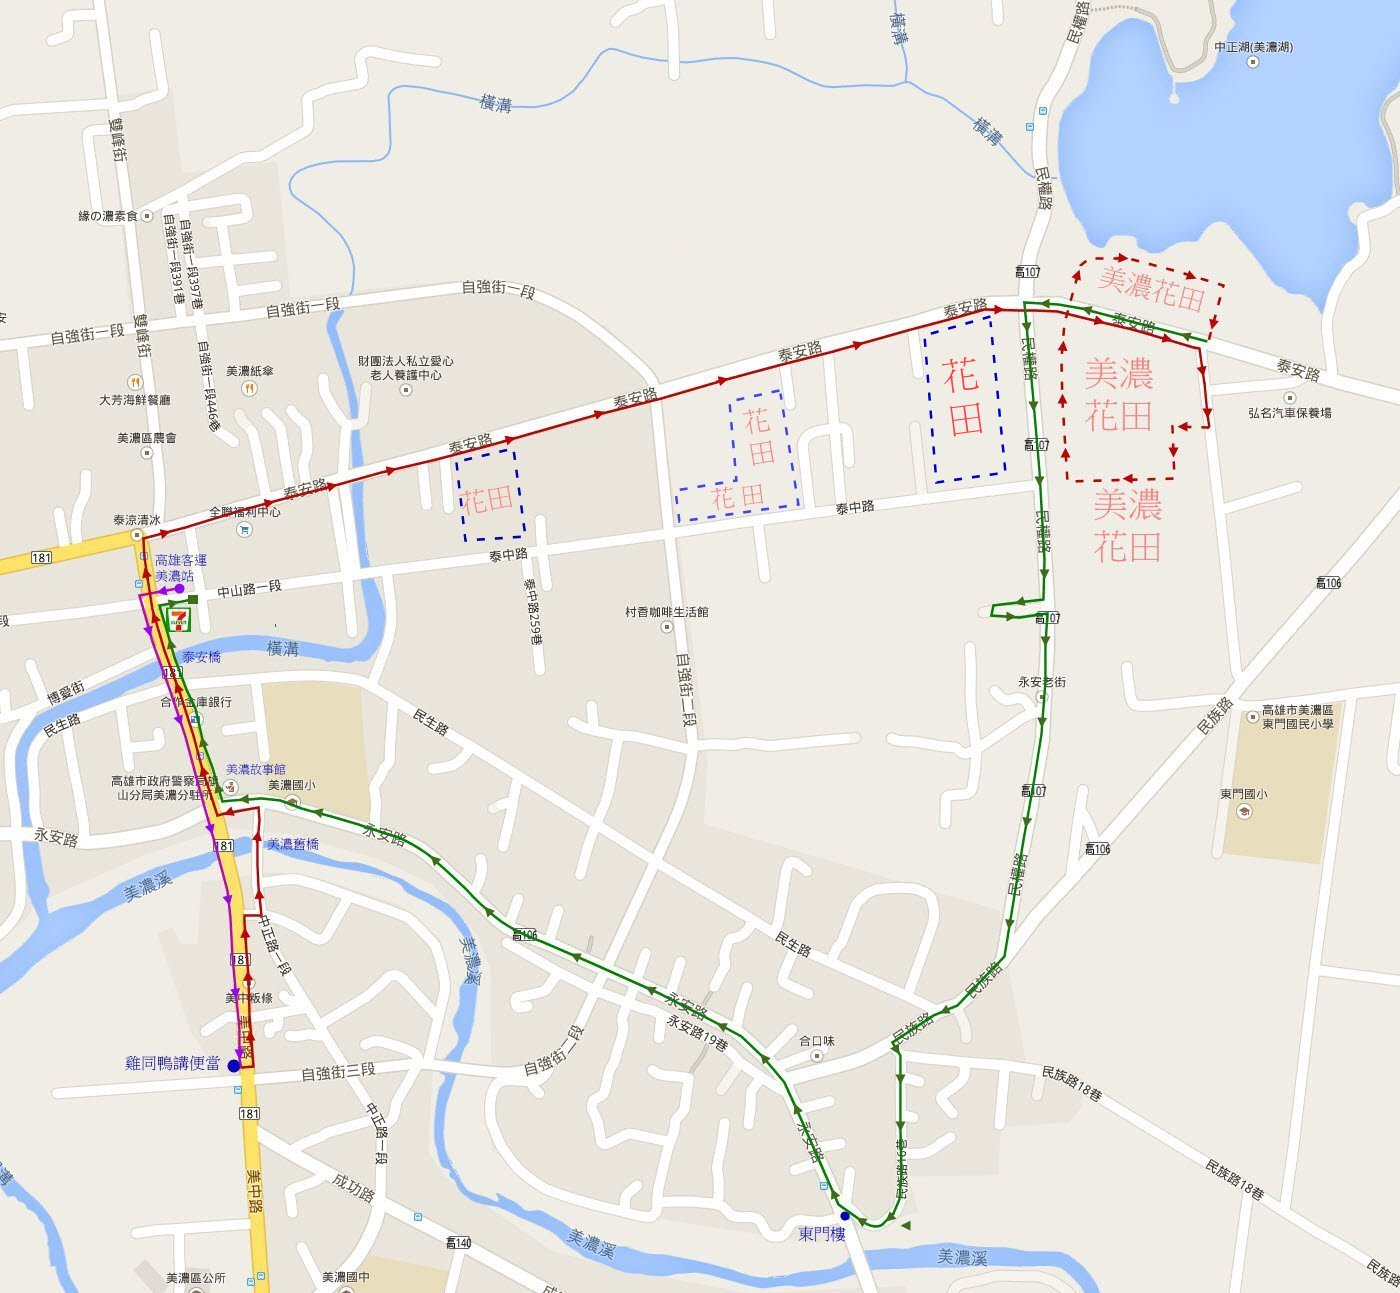 kaohsiung-minong-walk-route-map